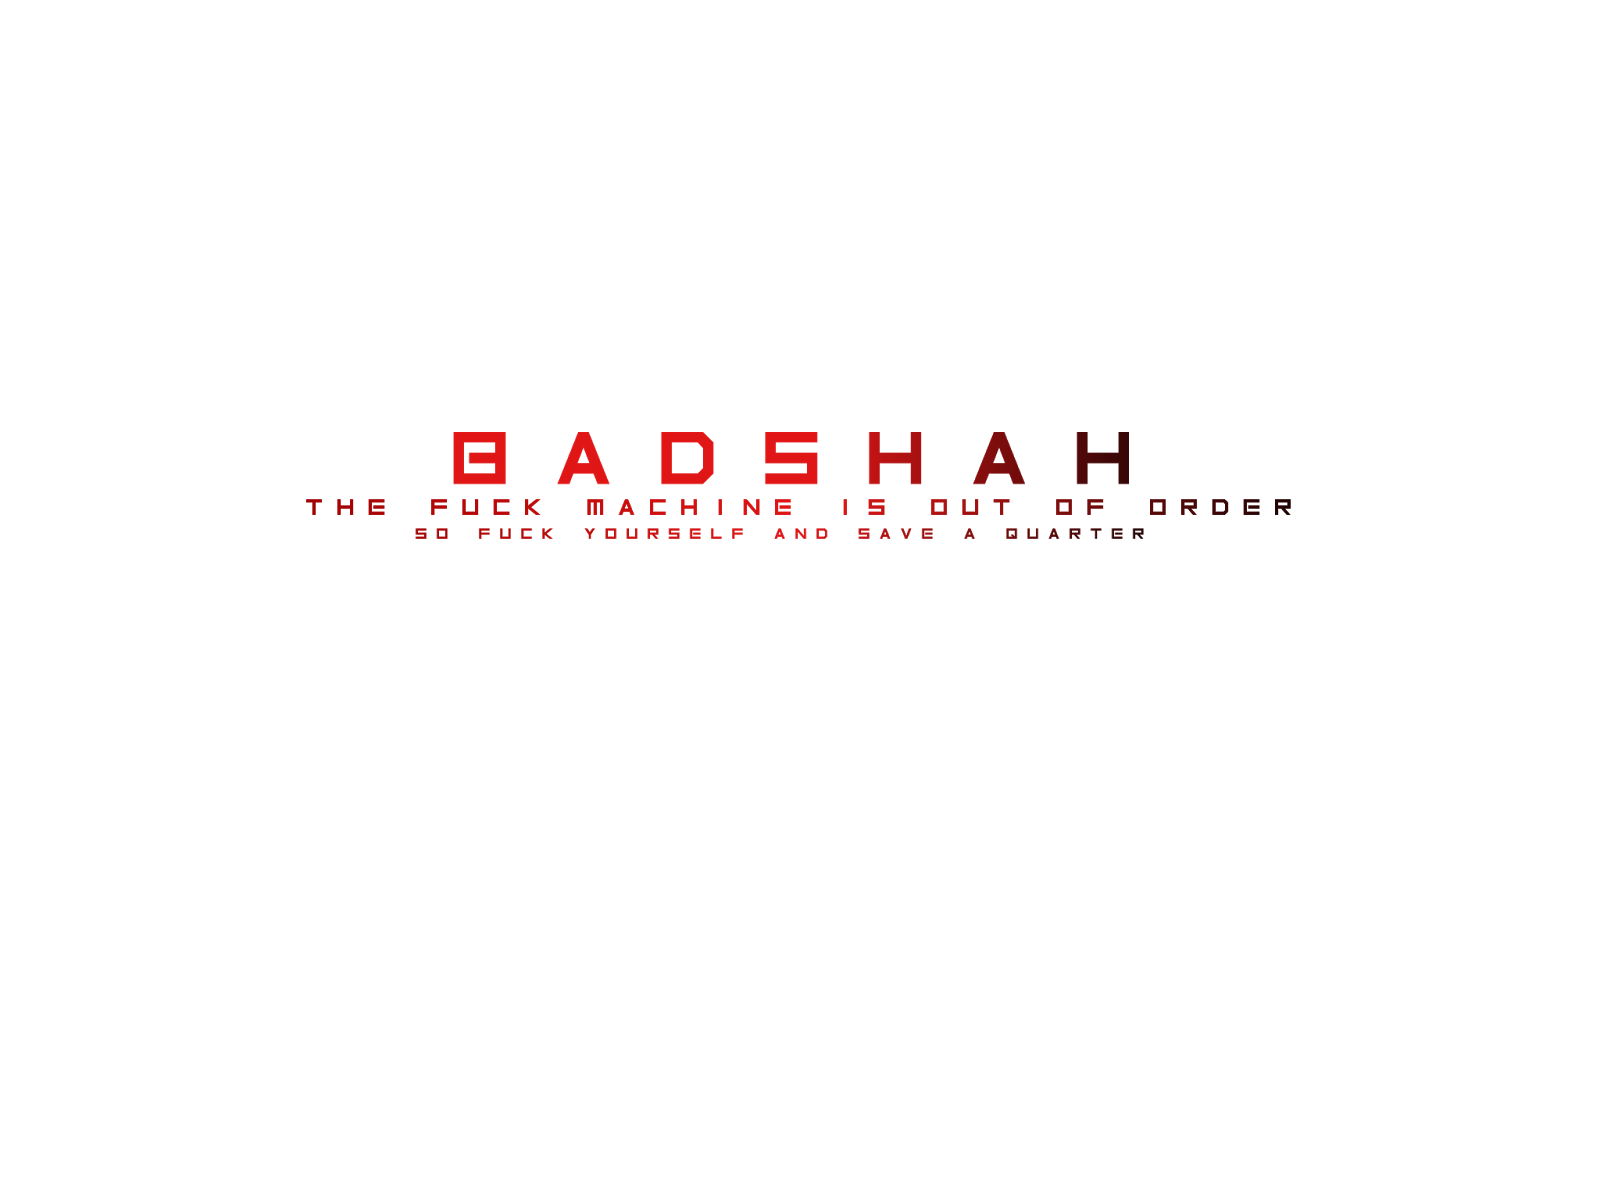 Badmash Prk Editing Zone: Red + Black Text PNG.